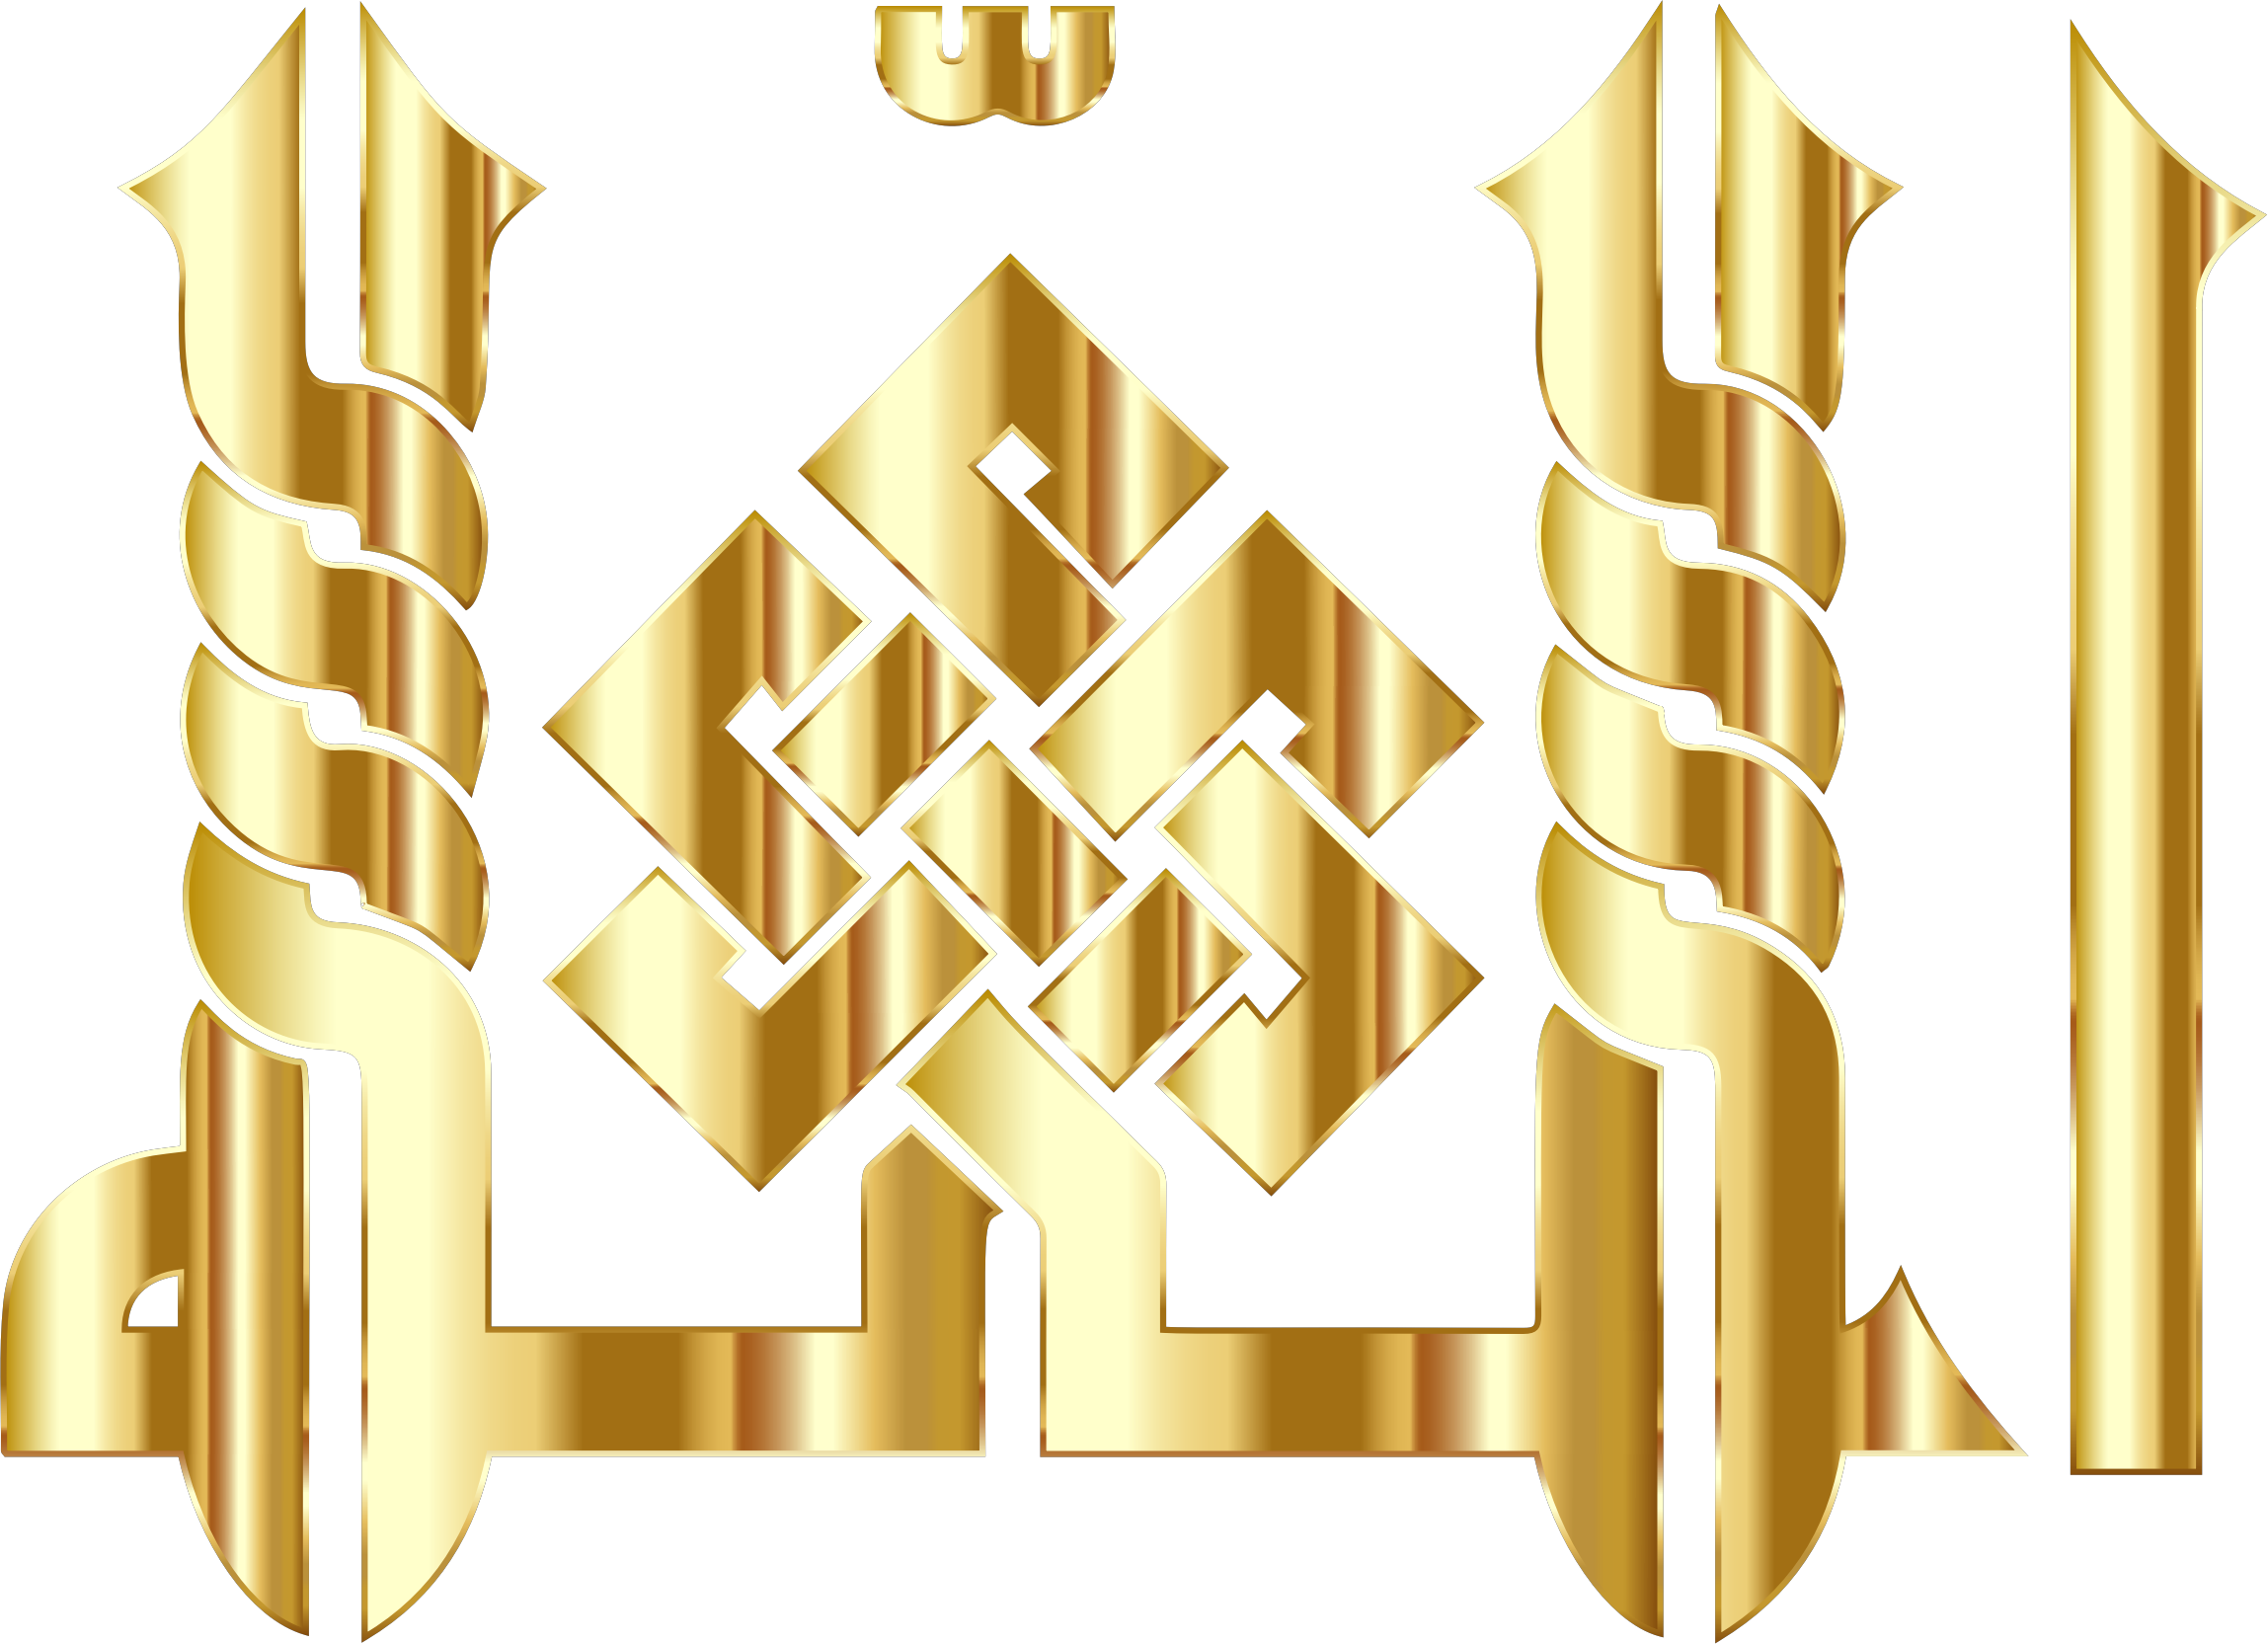 Gold BismAllah In Kufic Style 2 No Background by GDJ